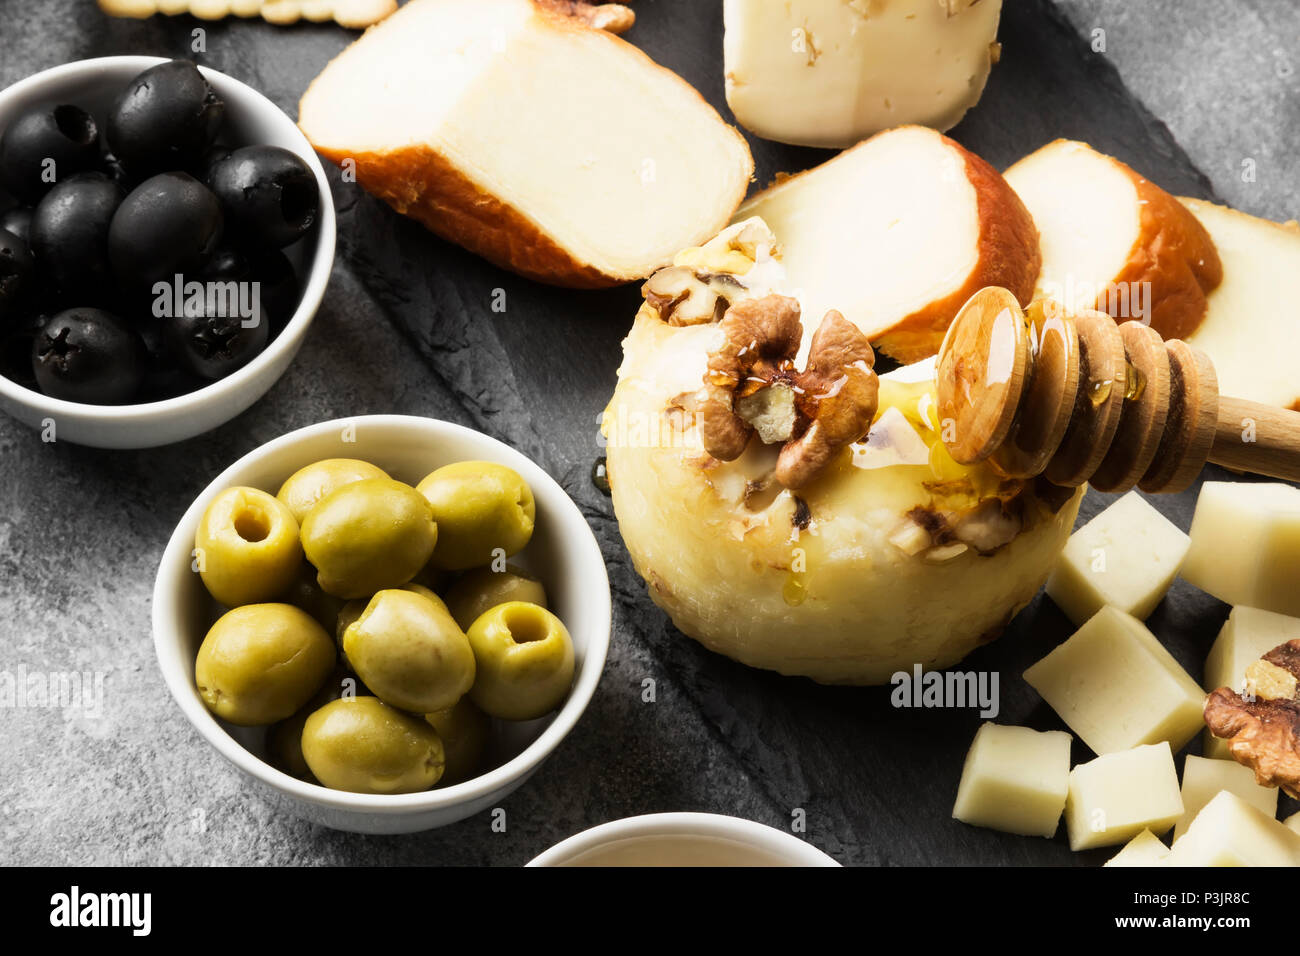 Snacks with wine - various types of cheeses, figs, nuts on a gray background Stock Photo